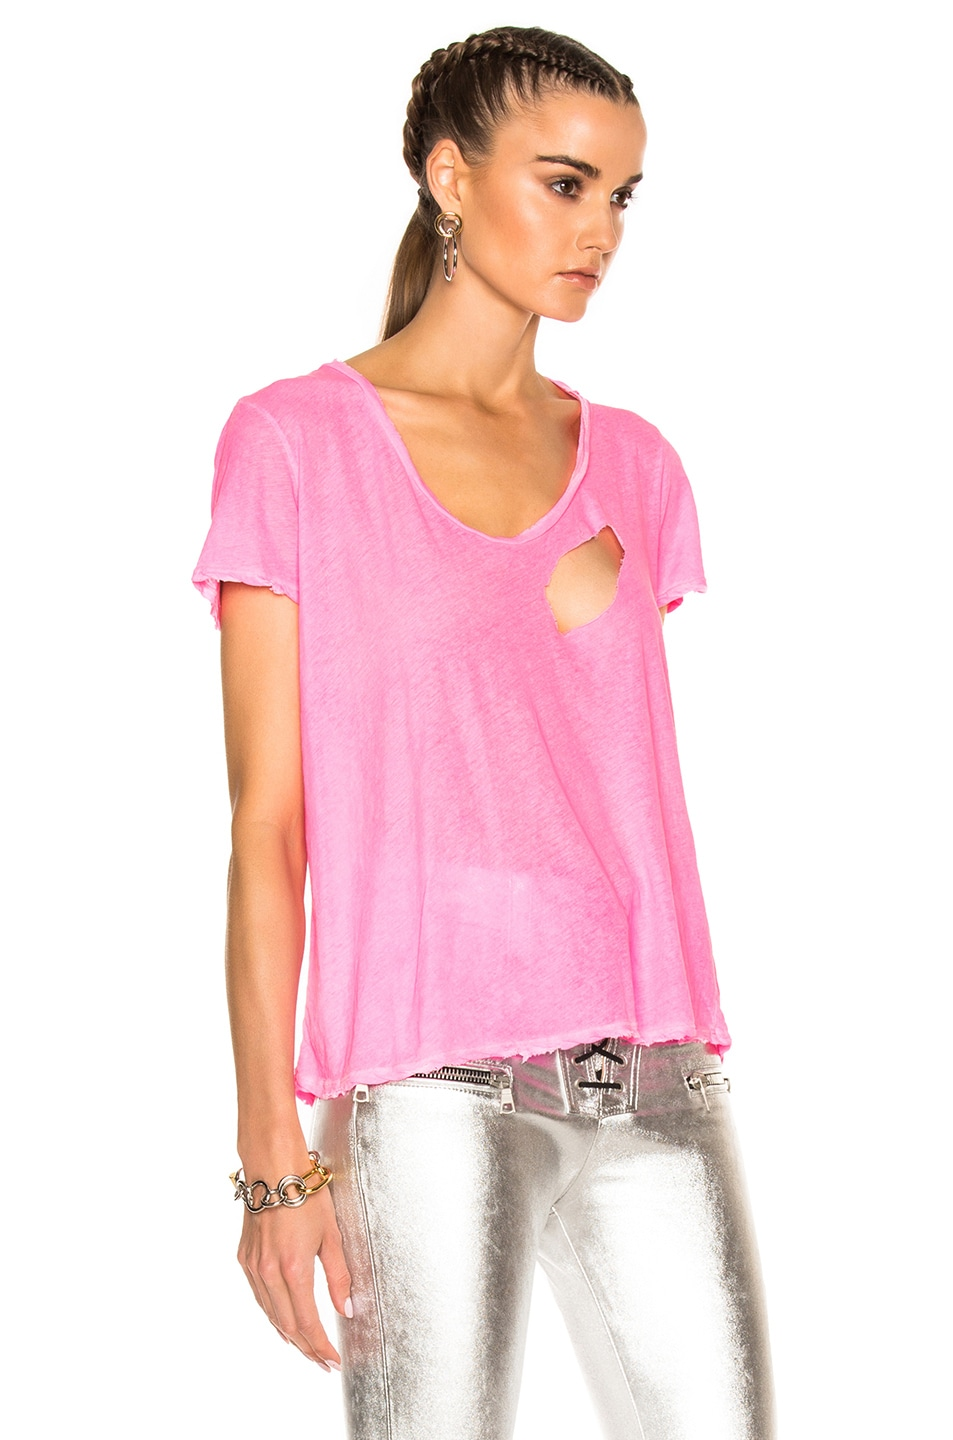 Distressed Jersey Basic Tee in Pink Unravel 2018 New ggp4gskBbK